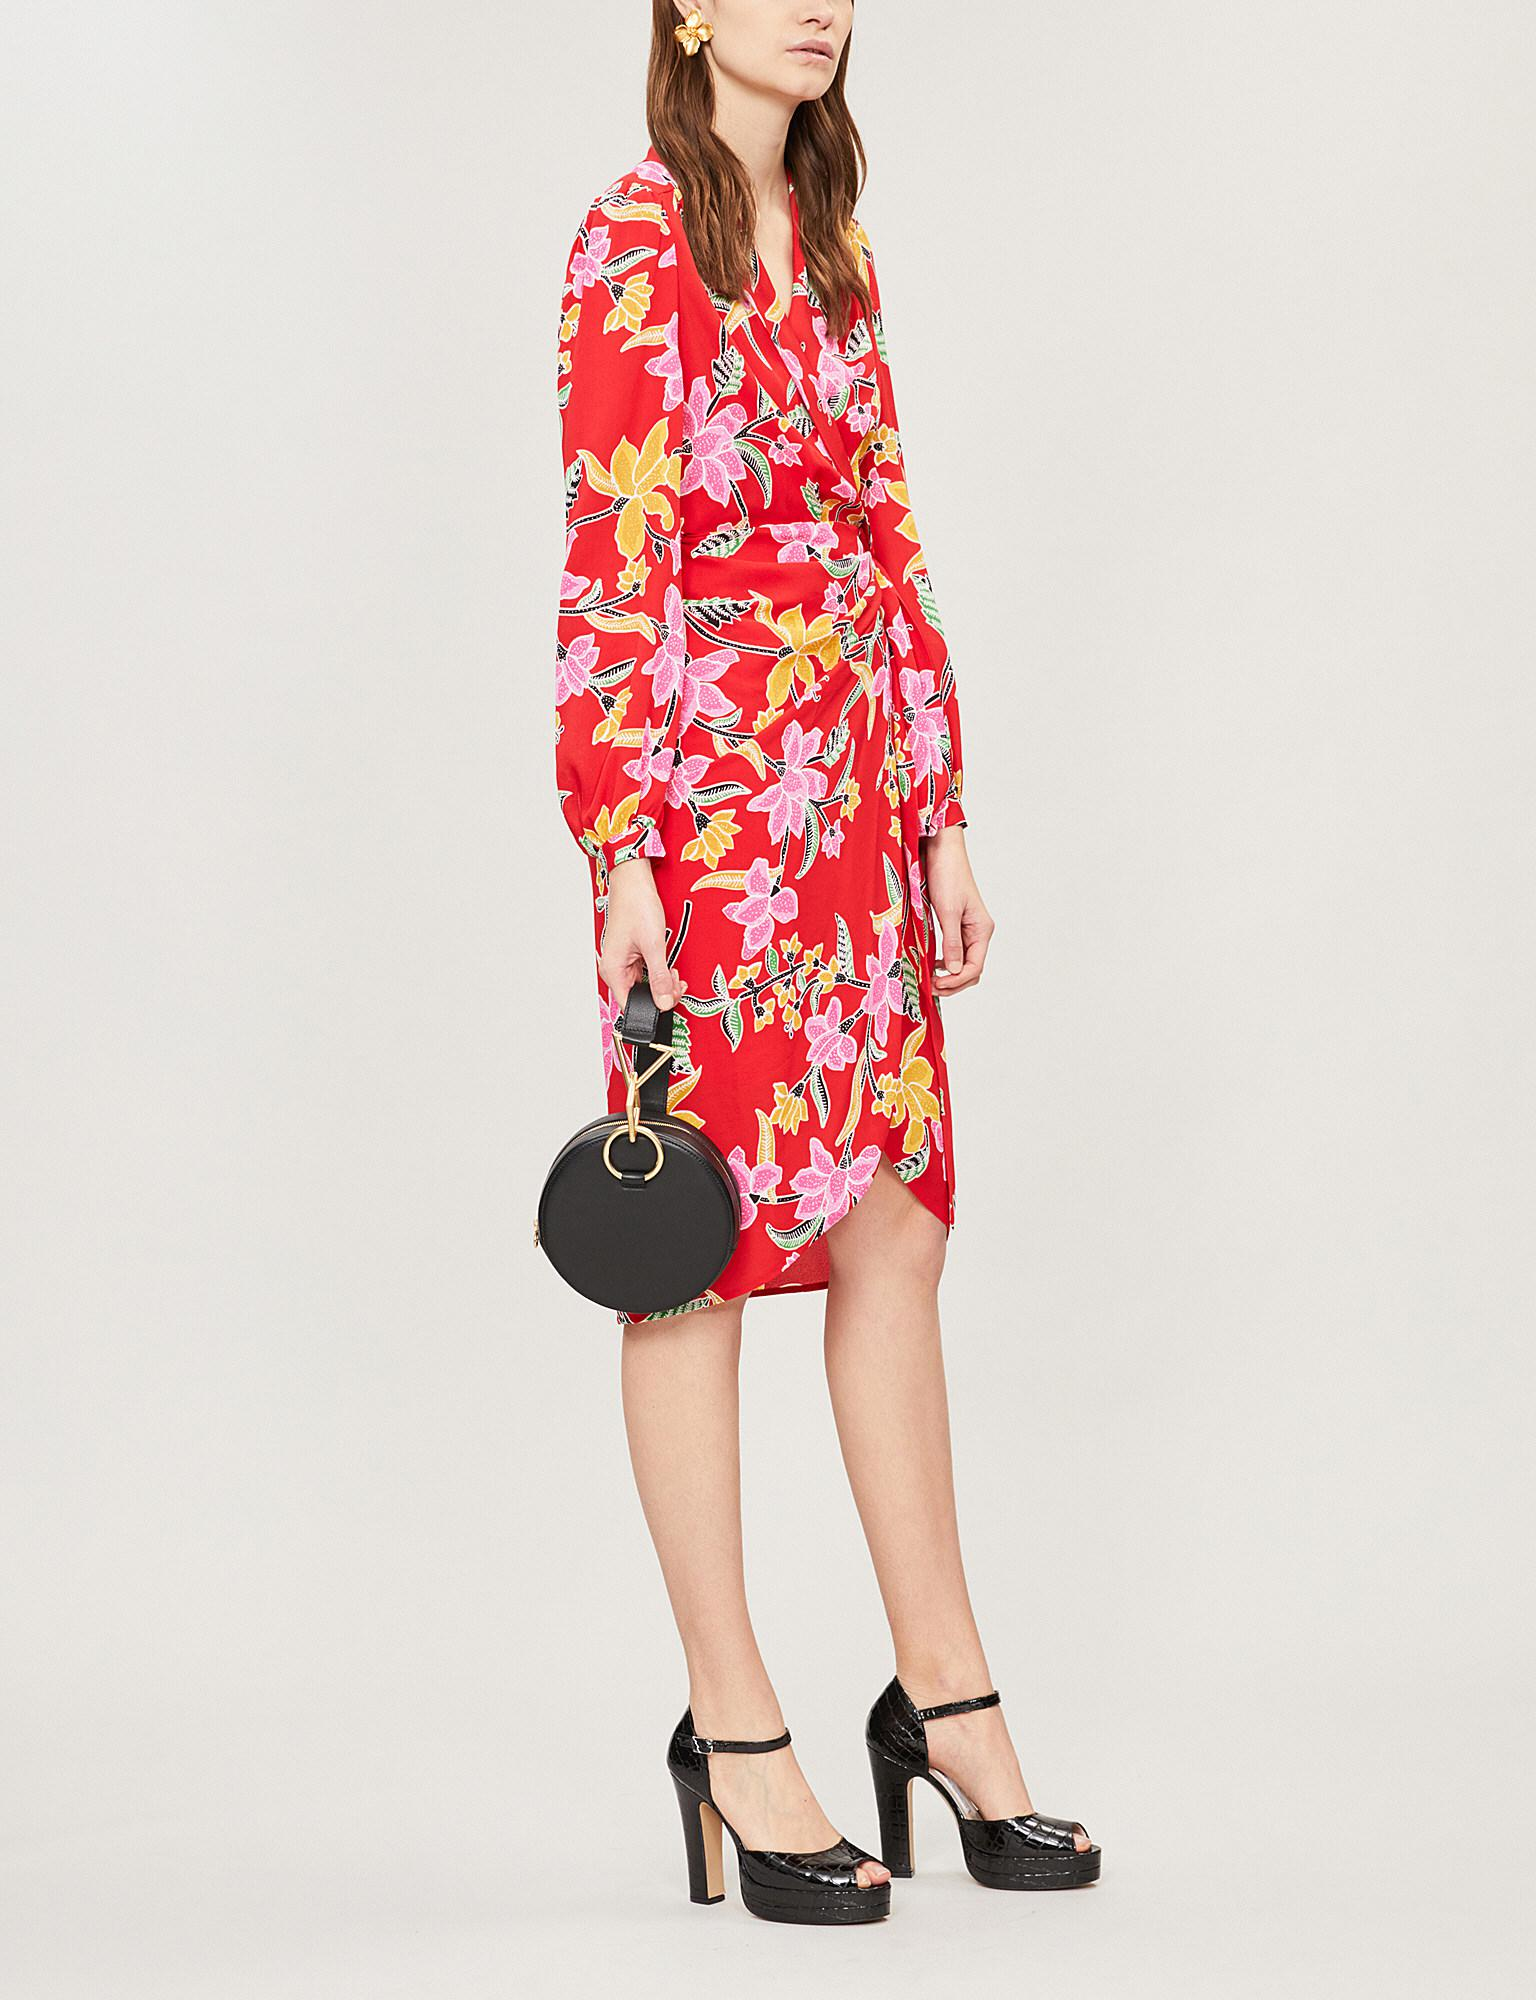 9641fa262a Diane Von Furstenberg Carla Floral-print Crepe Wrap Dress in Red - Lyst